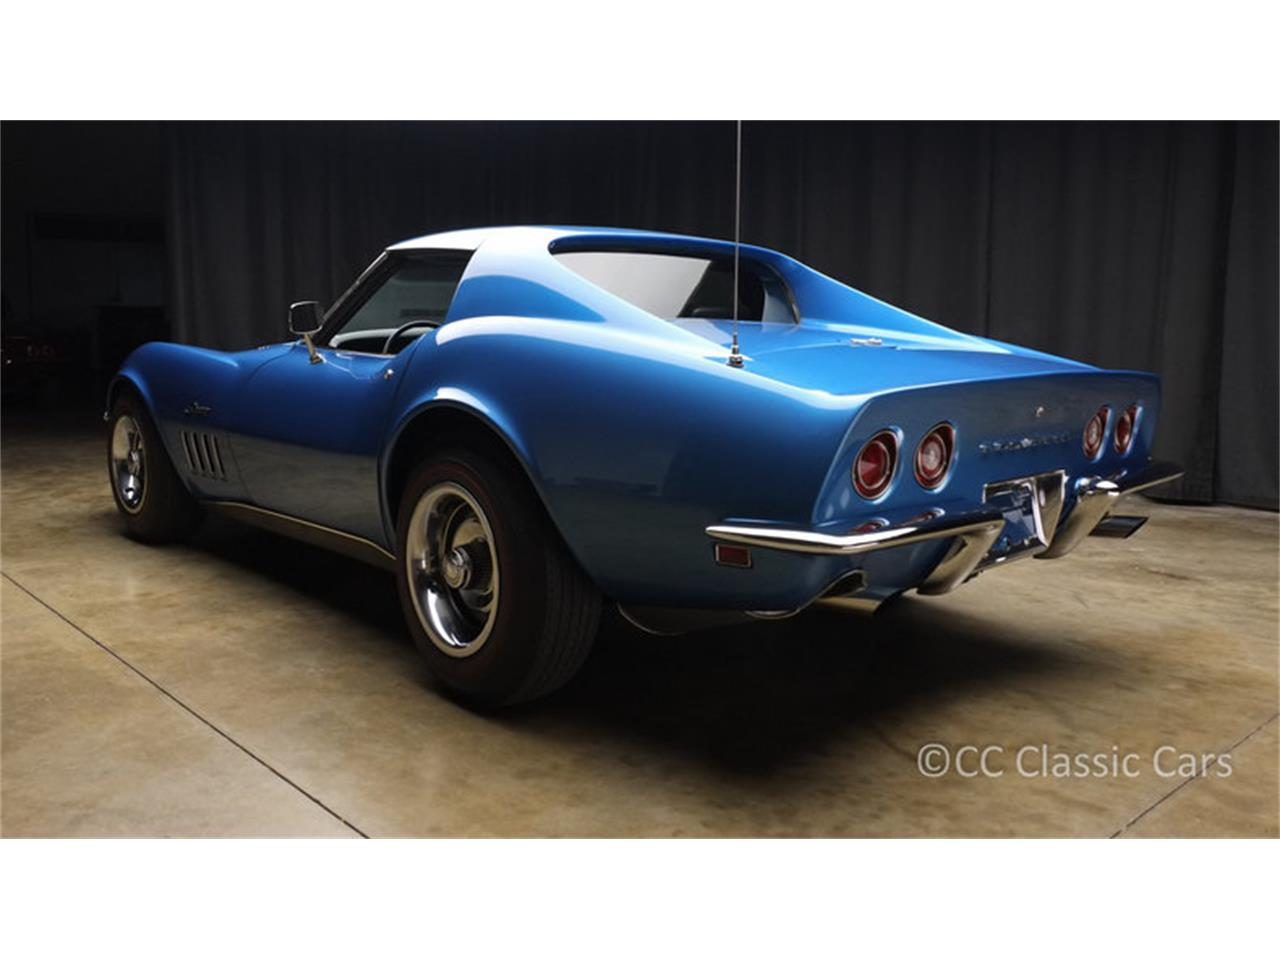 Large Picture of '69 Corvette located in West Chester Pennsylvania Auction Vehicle - HYYM